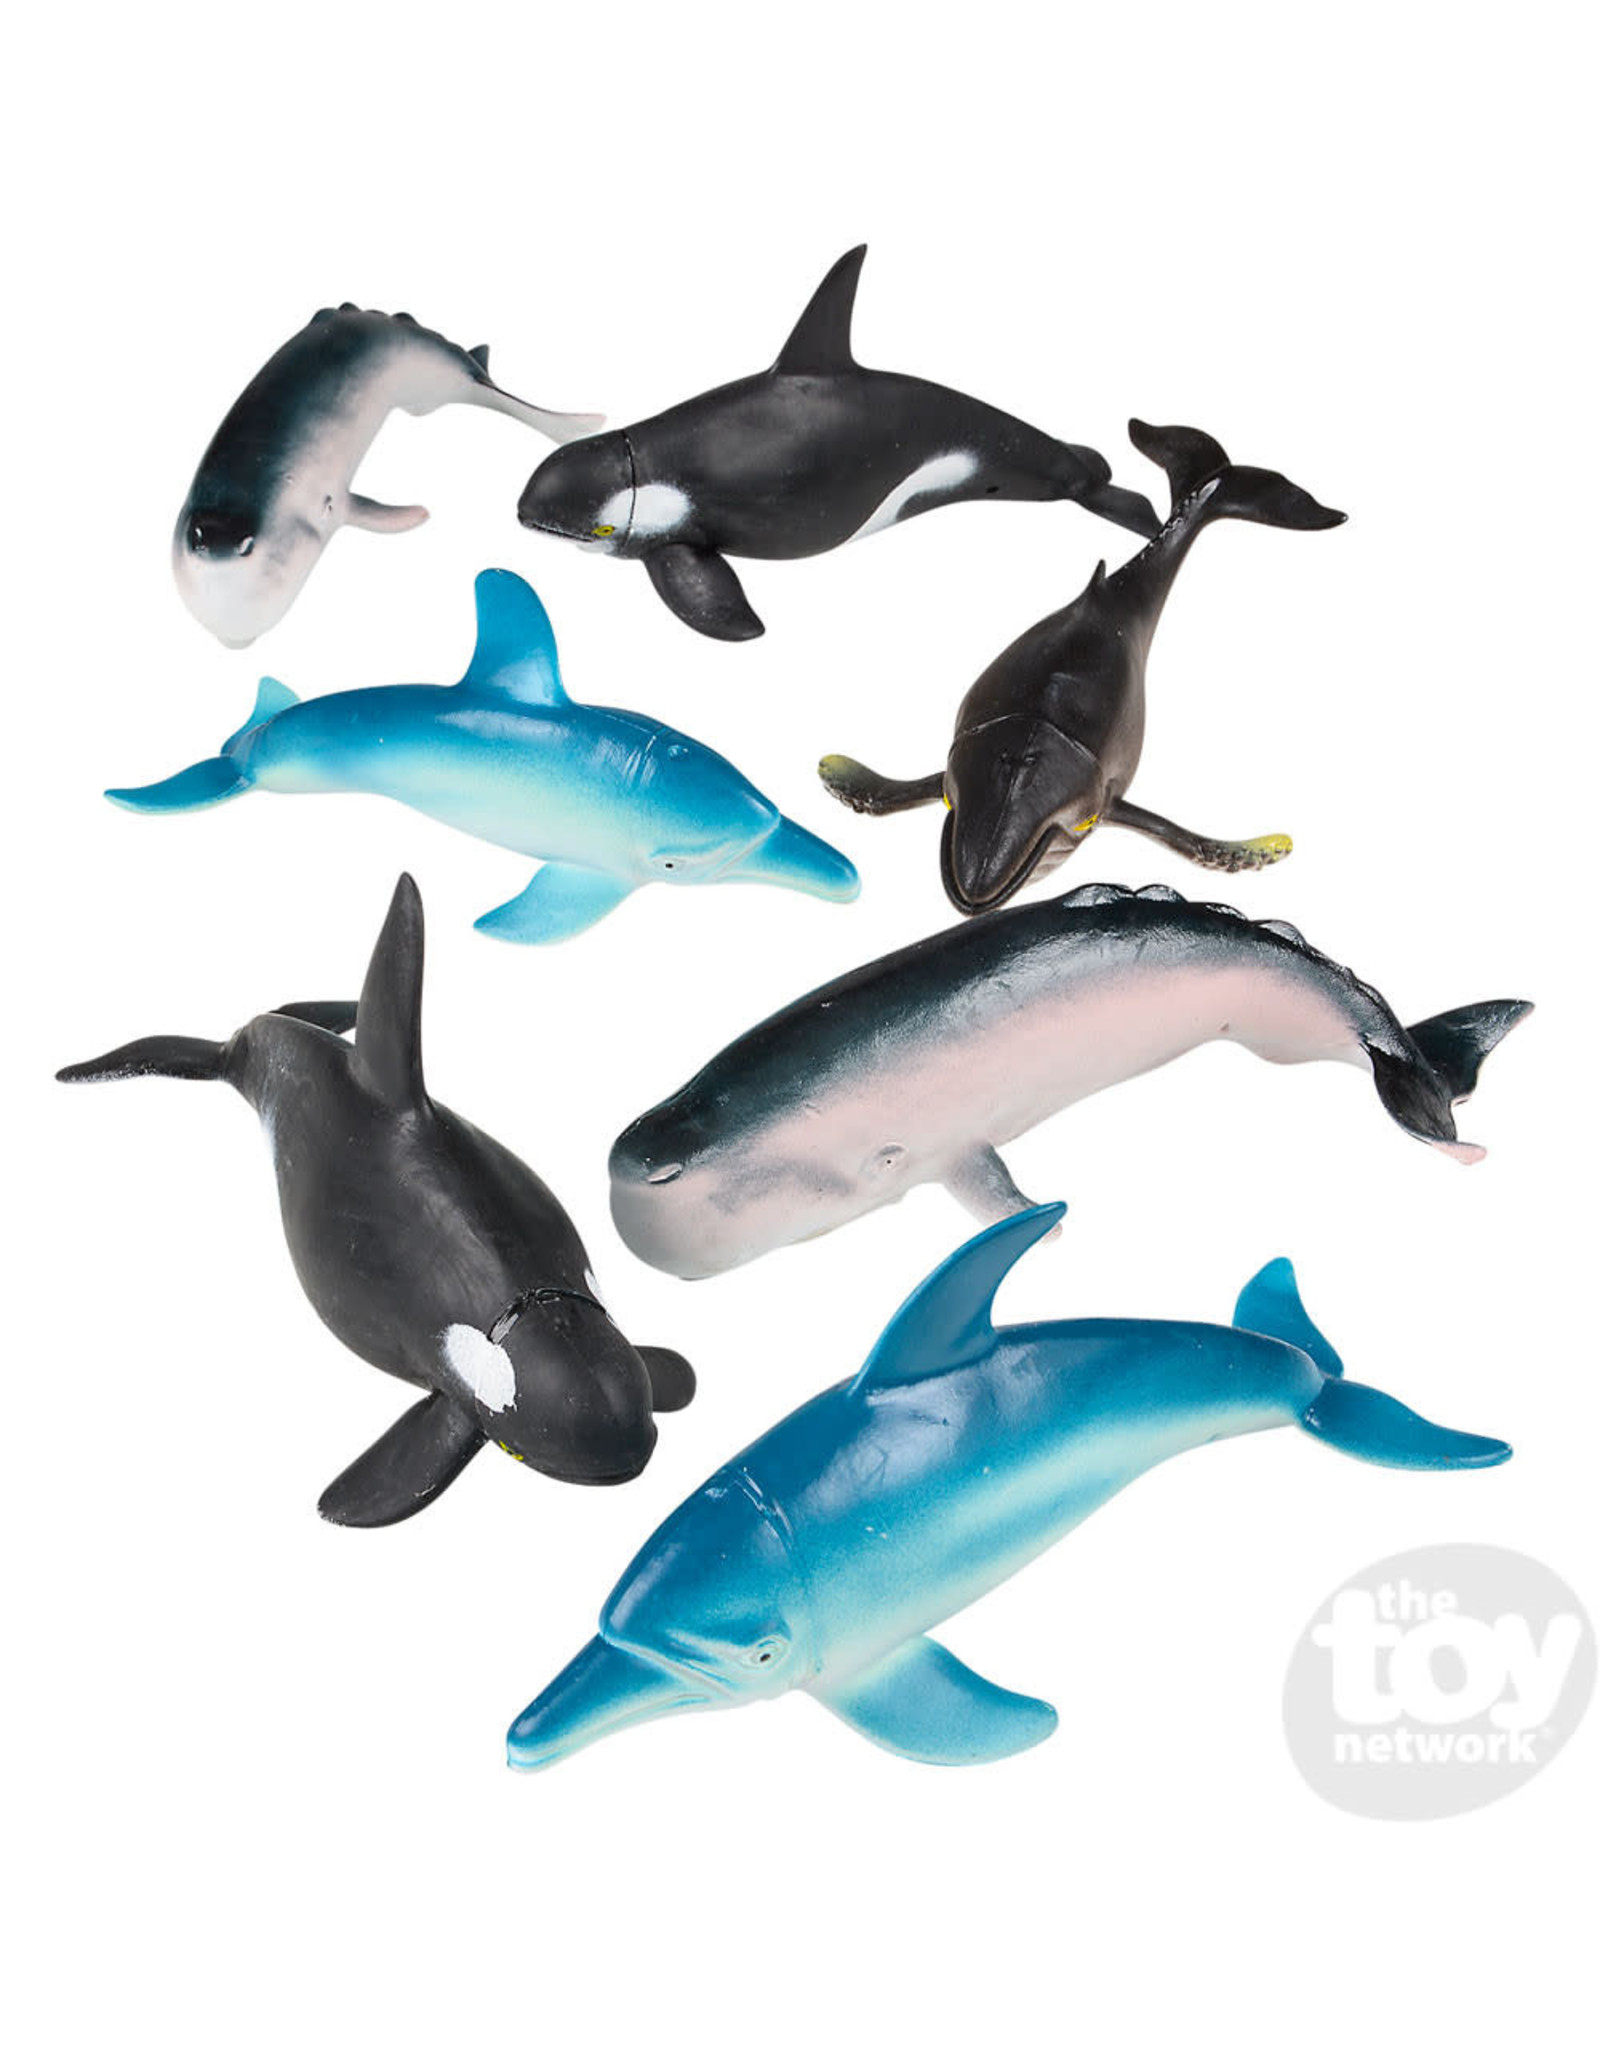 The Toy Network Whales and Dolphins, 7 pack